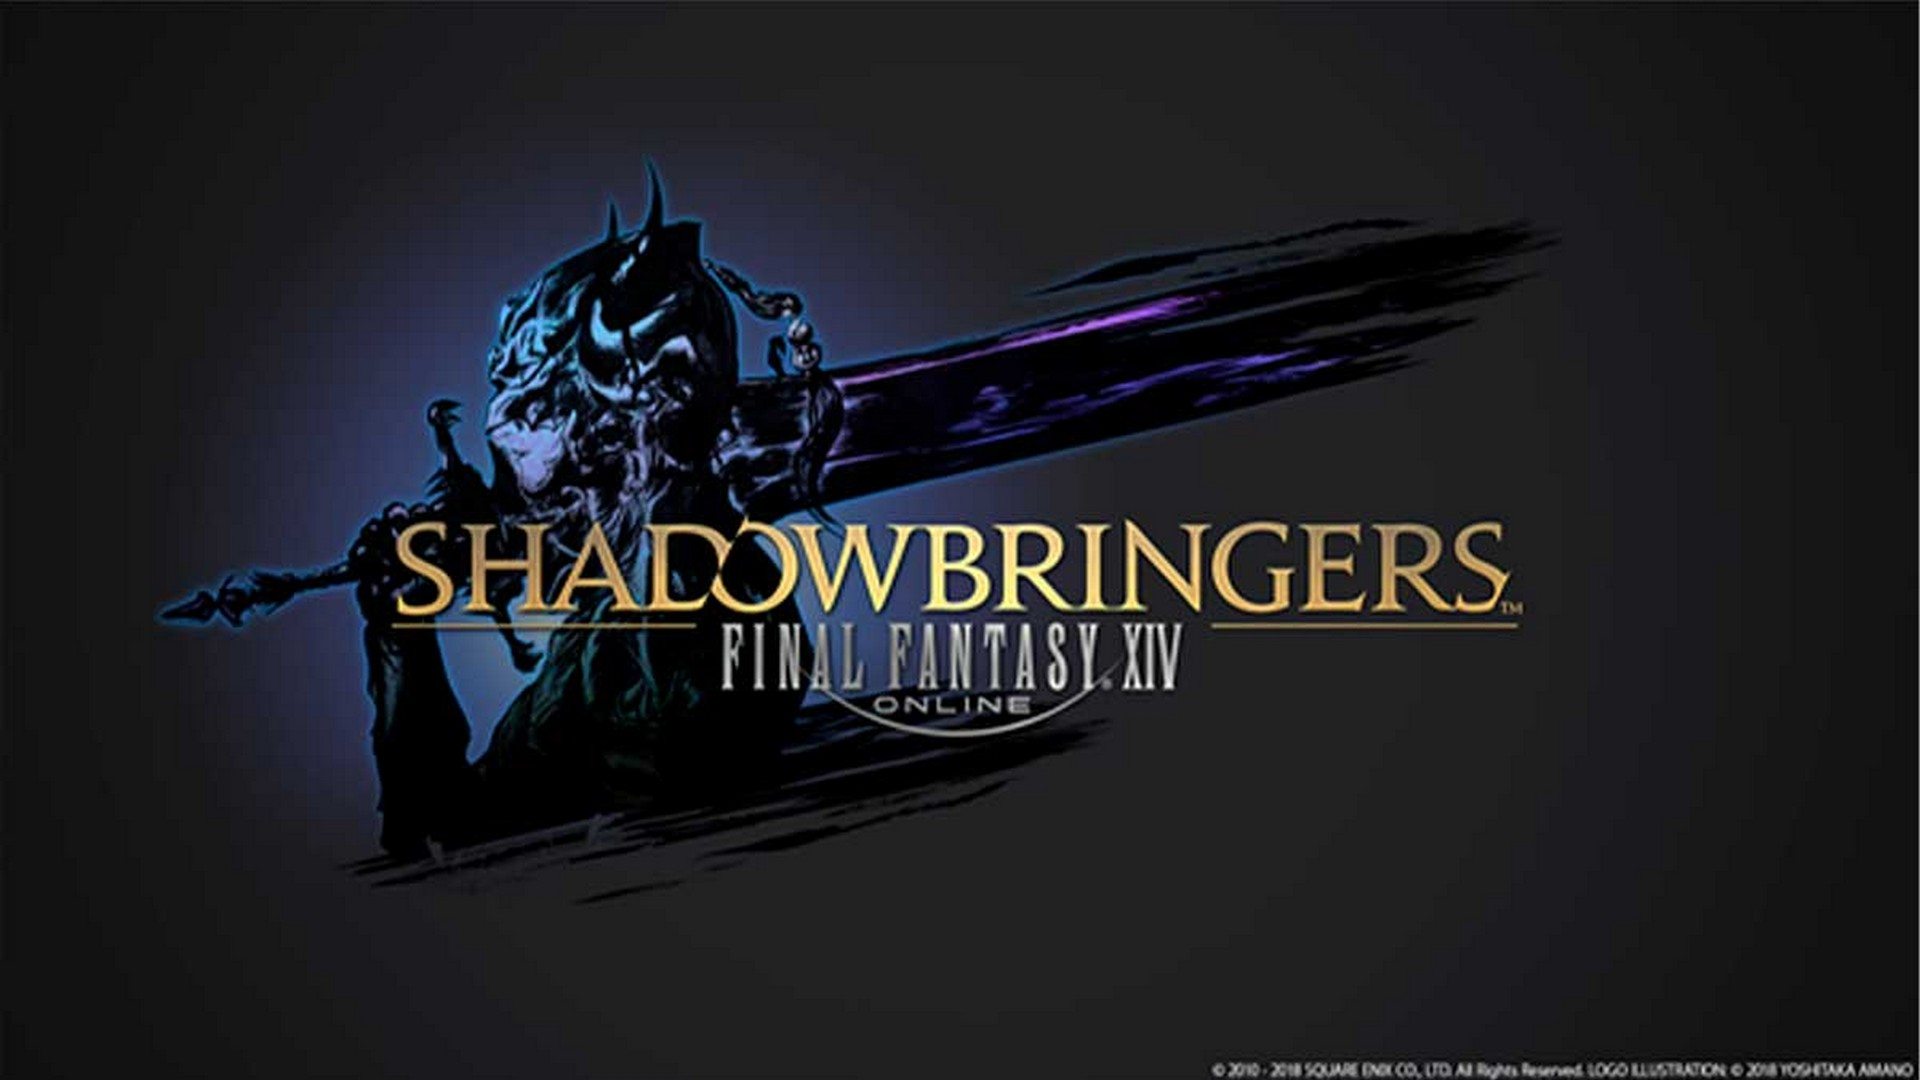 Shadowbringers Reaches It's Climax As Final Fantasy XIV Online Patch 5.3 Launches Today With Expanded Free Trial